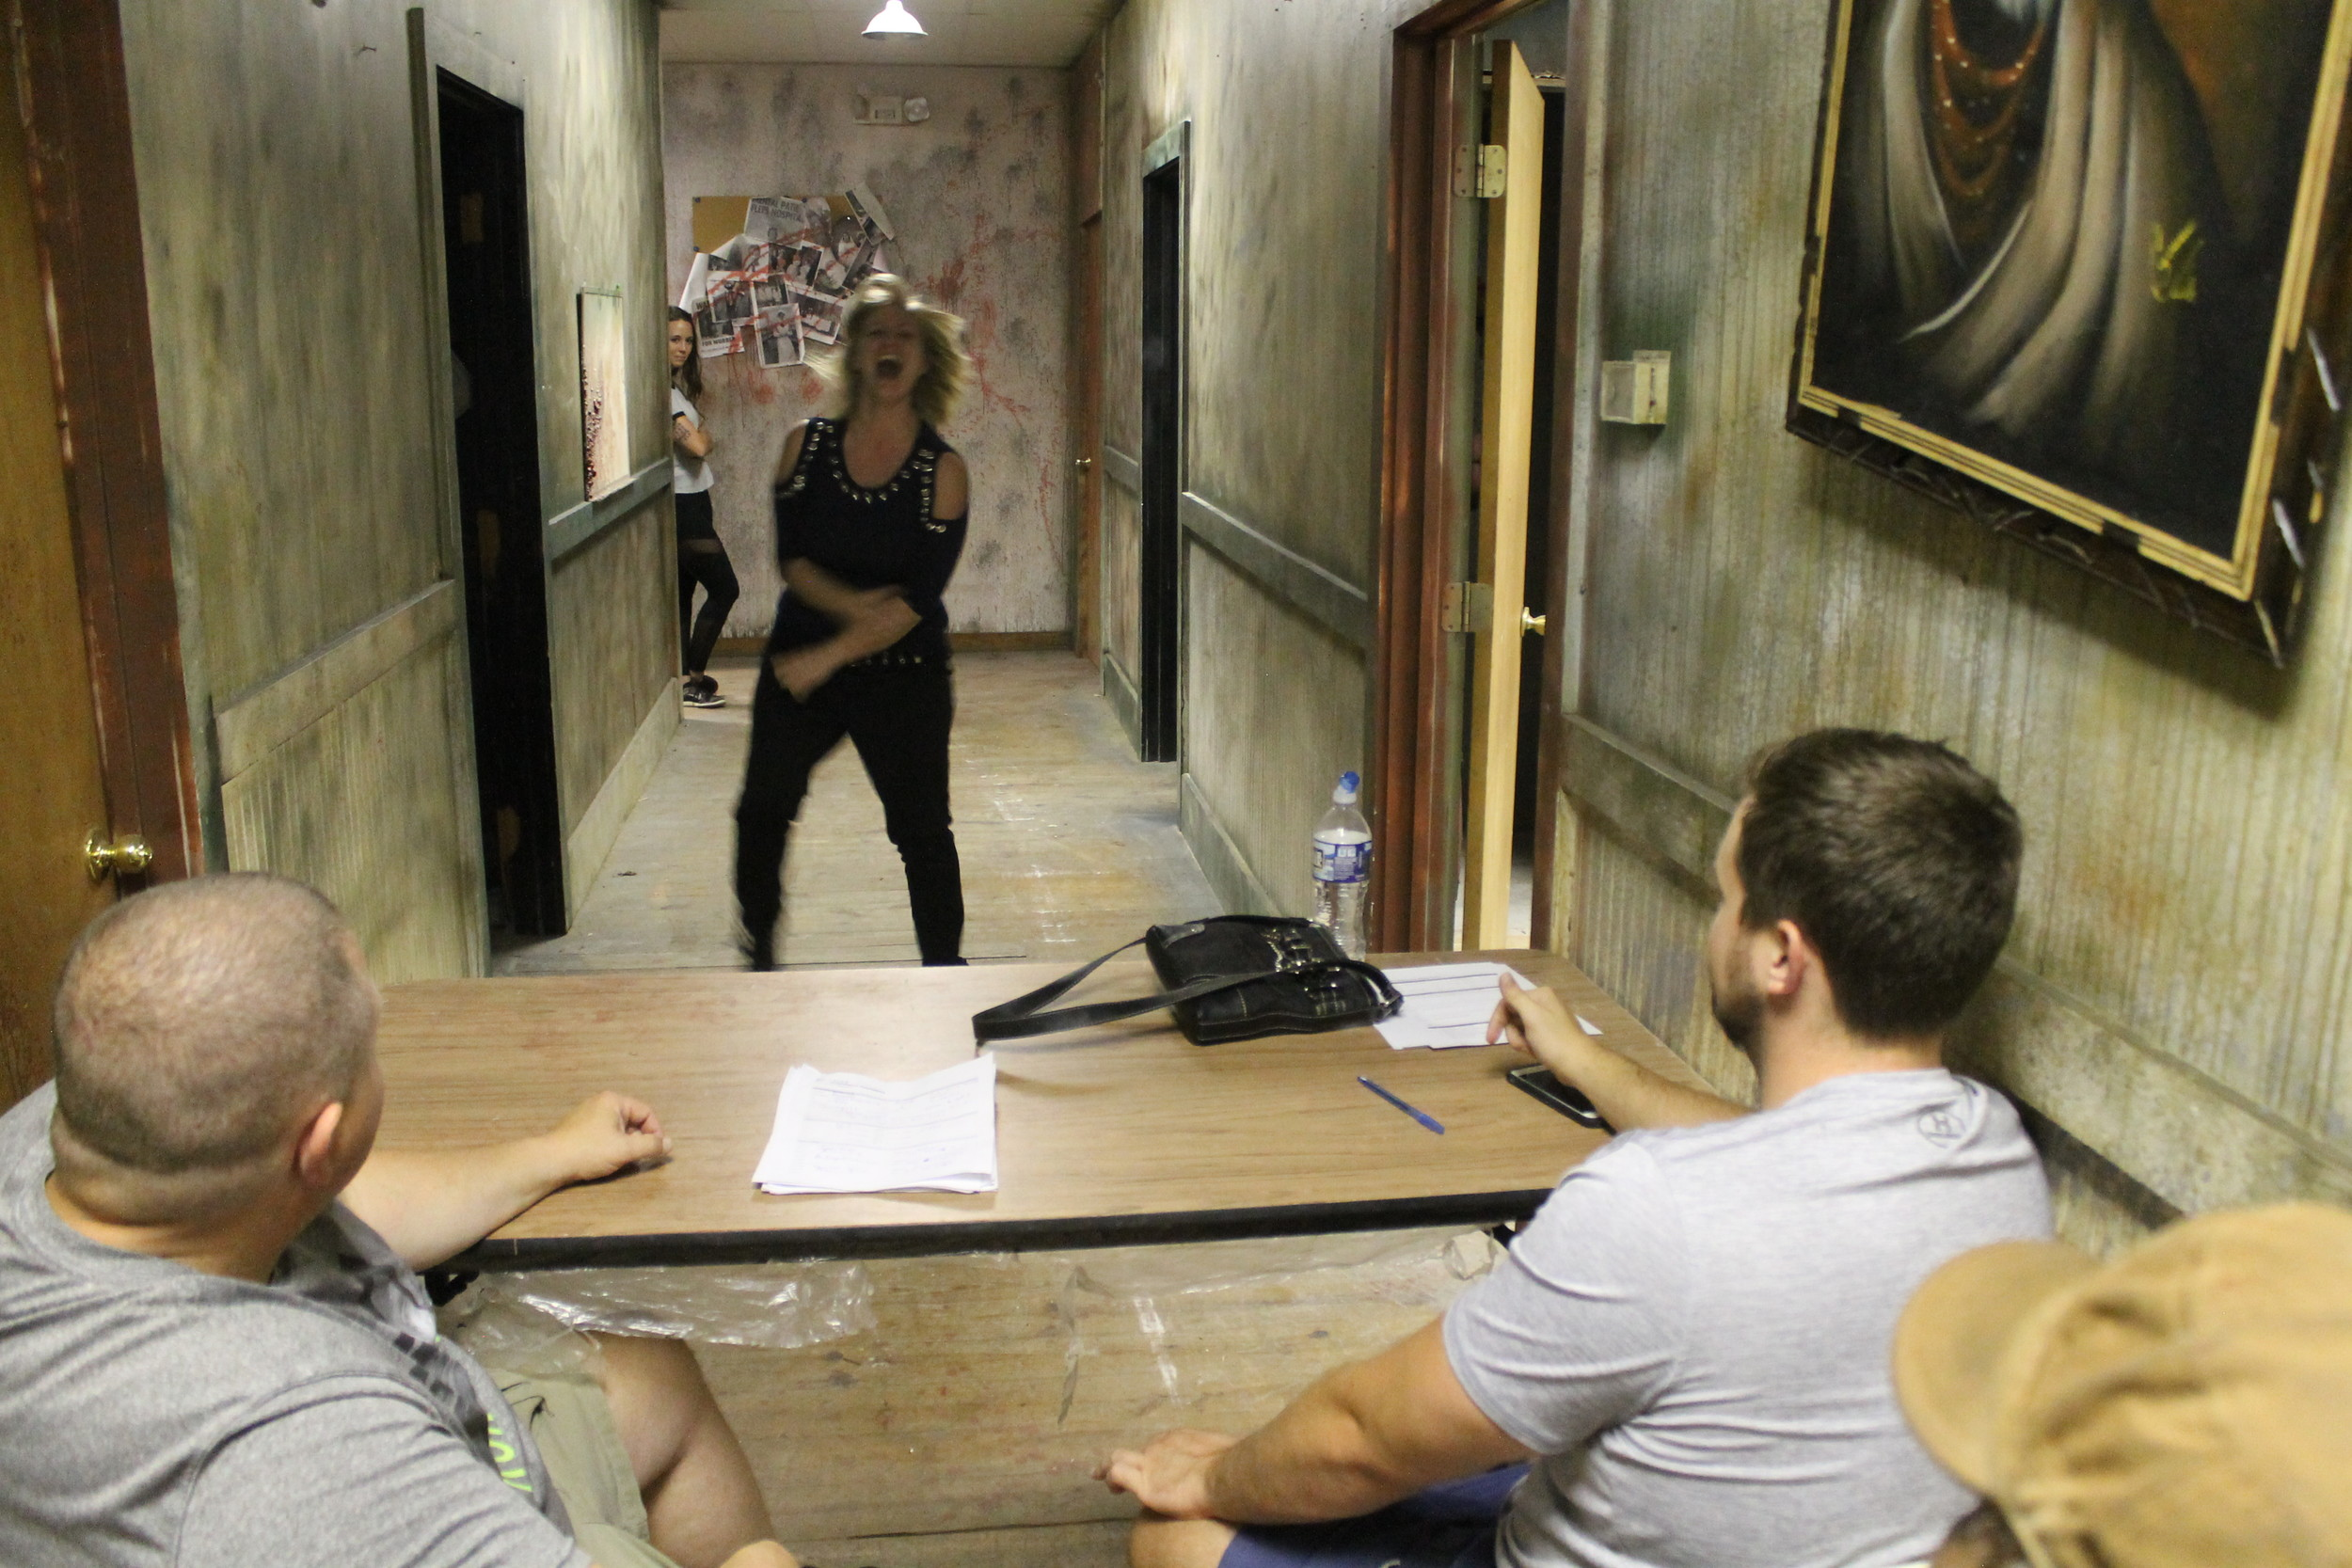 Seth Woodruff, right, and his dad, Rob Woodruff, left, watch Amanda Reynolds of Loxley audition to be a cast member at Nightmare Chambers in Fairhope. Reynolds portrayal of an insane asylum patient at the haunted house last year was so convincing that a visitor asked the staff to check on her.